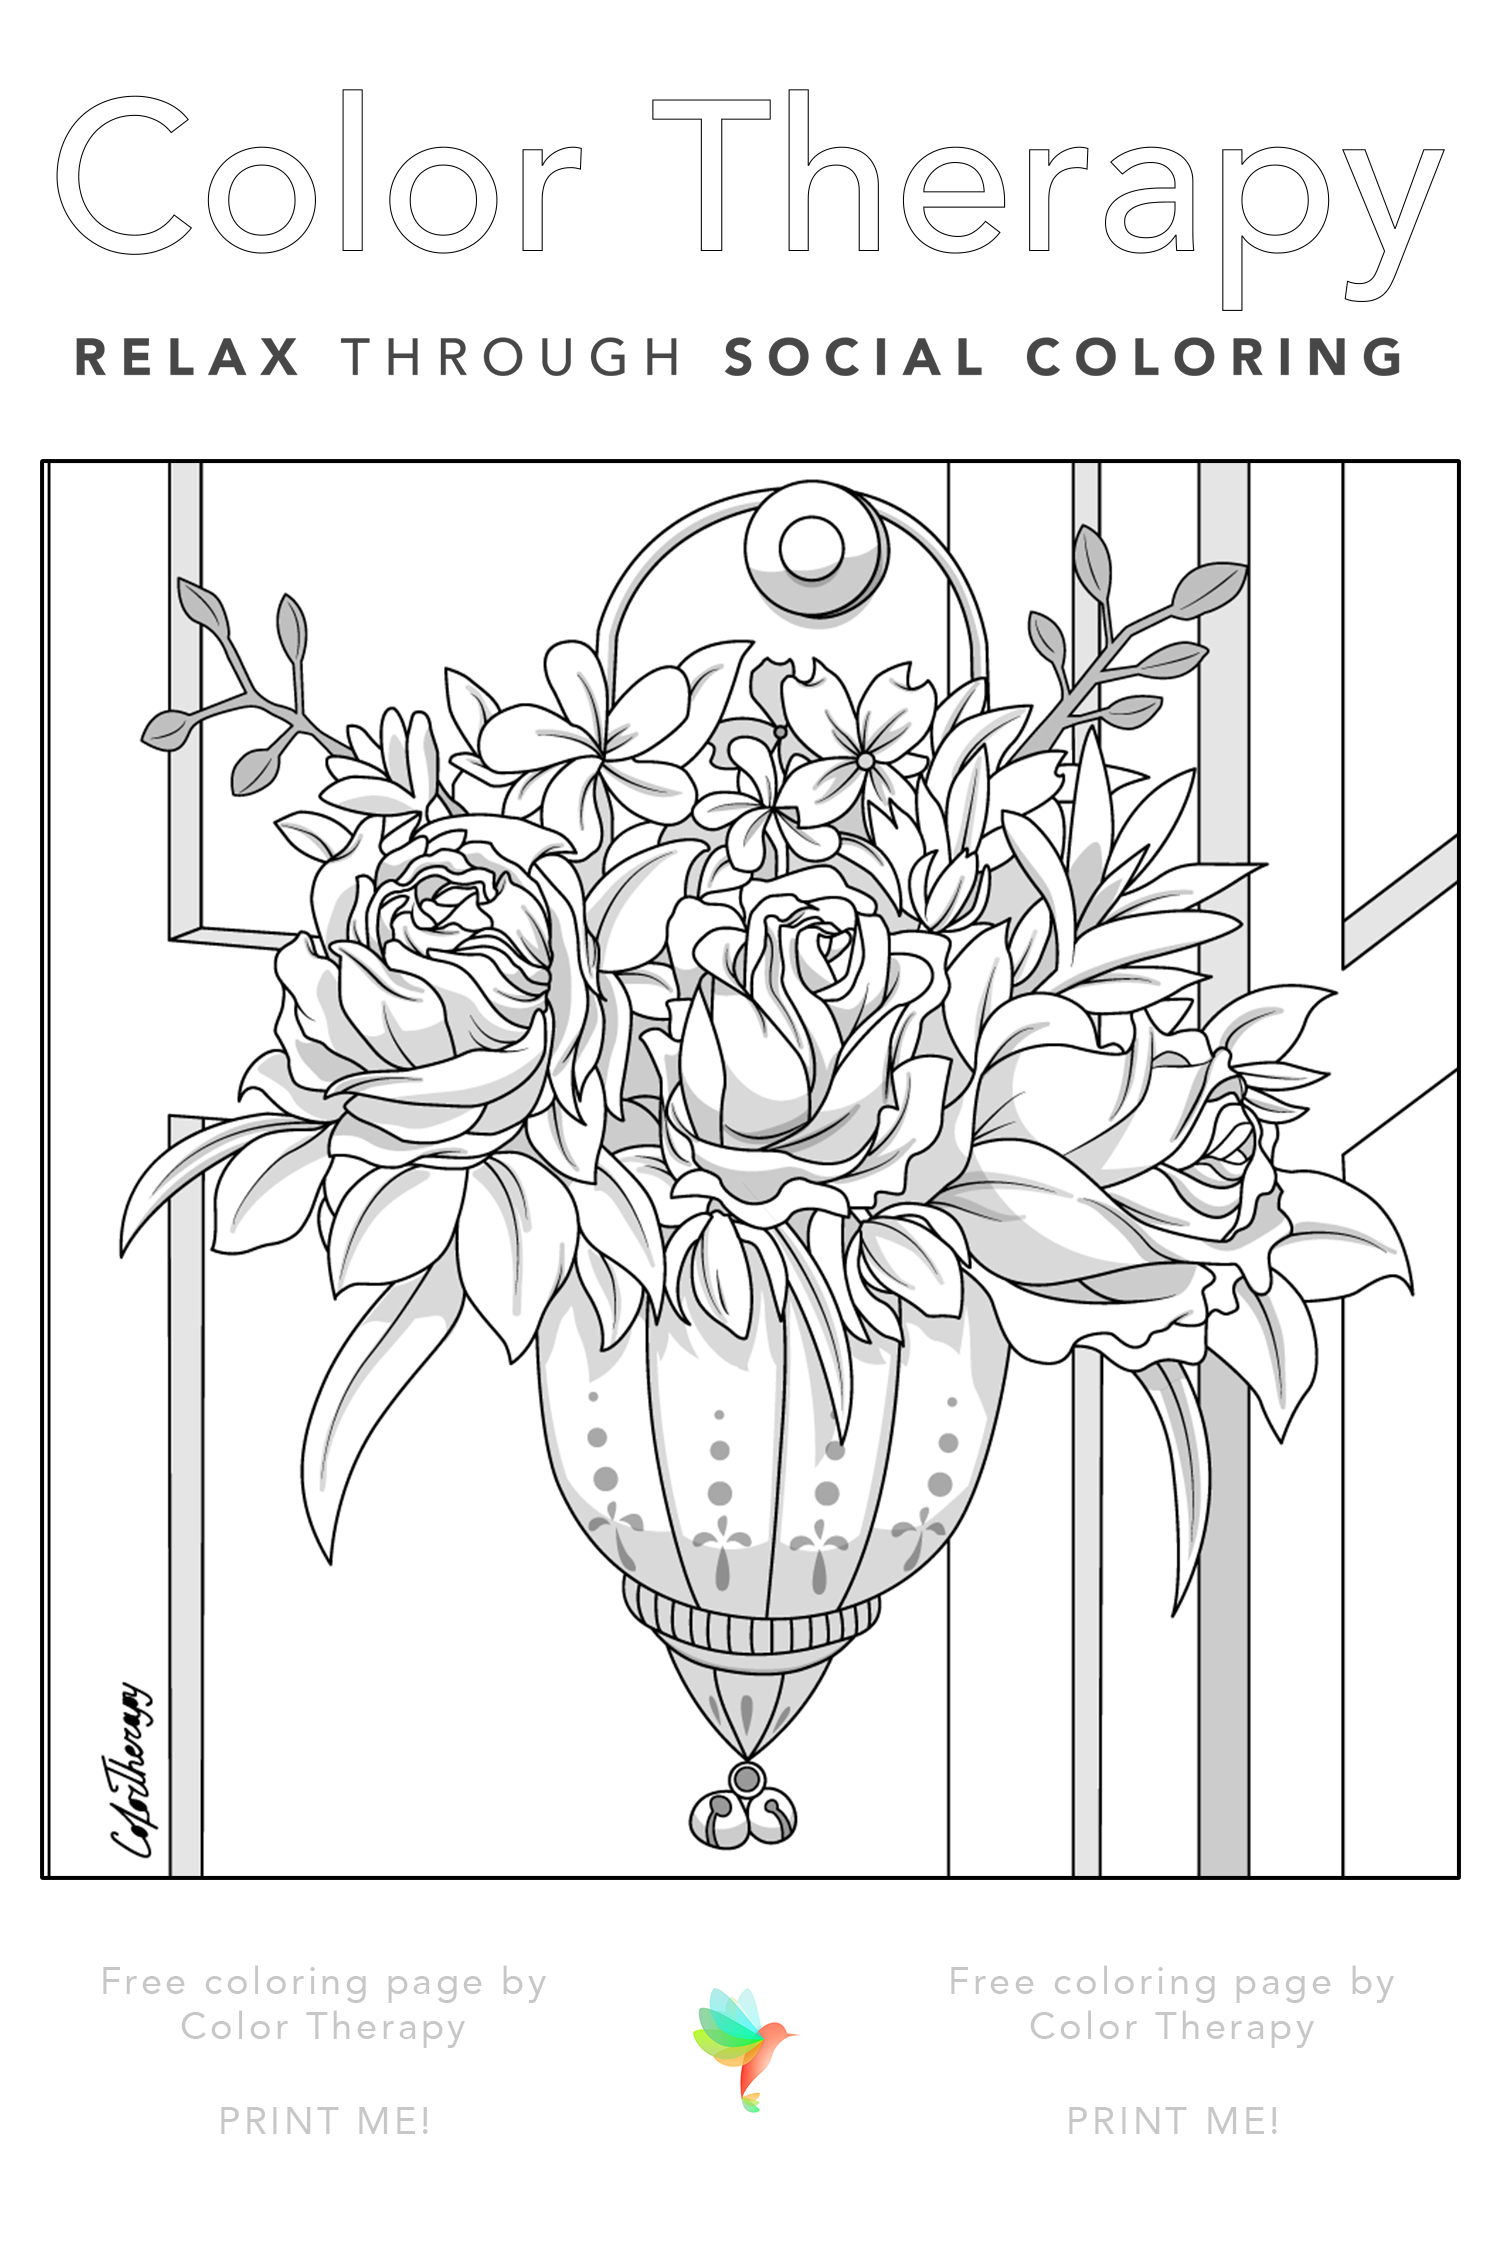 Color Therapy Gift Of The Day Free Coloring Template Cartoon Coloring Pages Coloring Book Art Free Coloring Pages